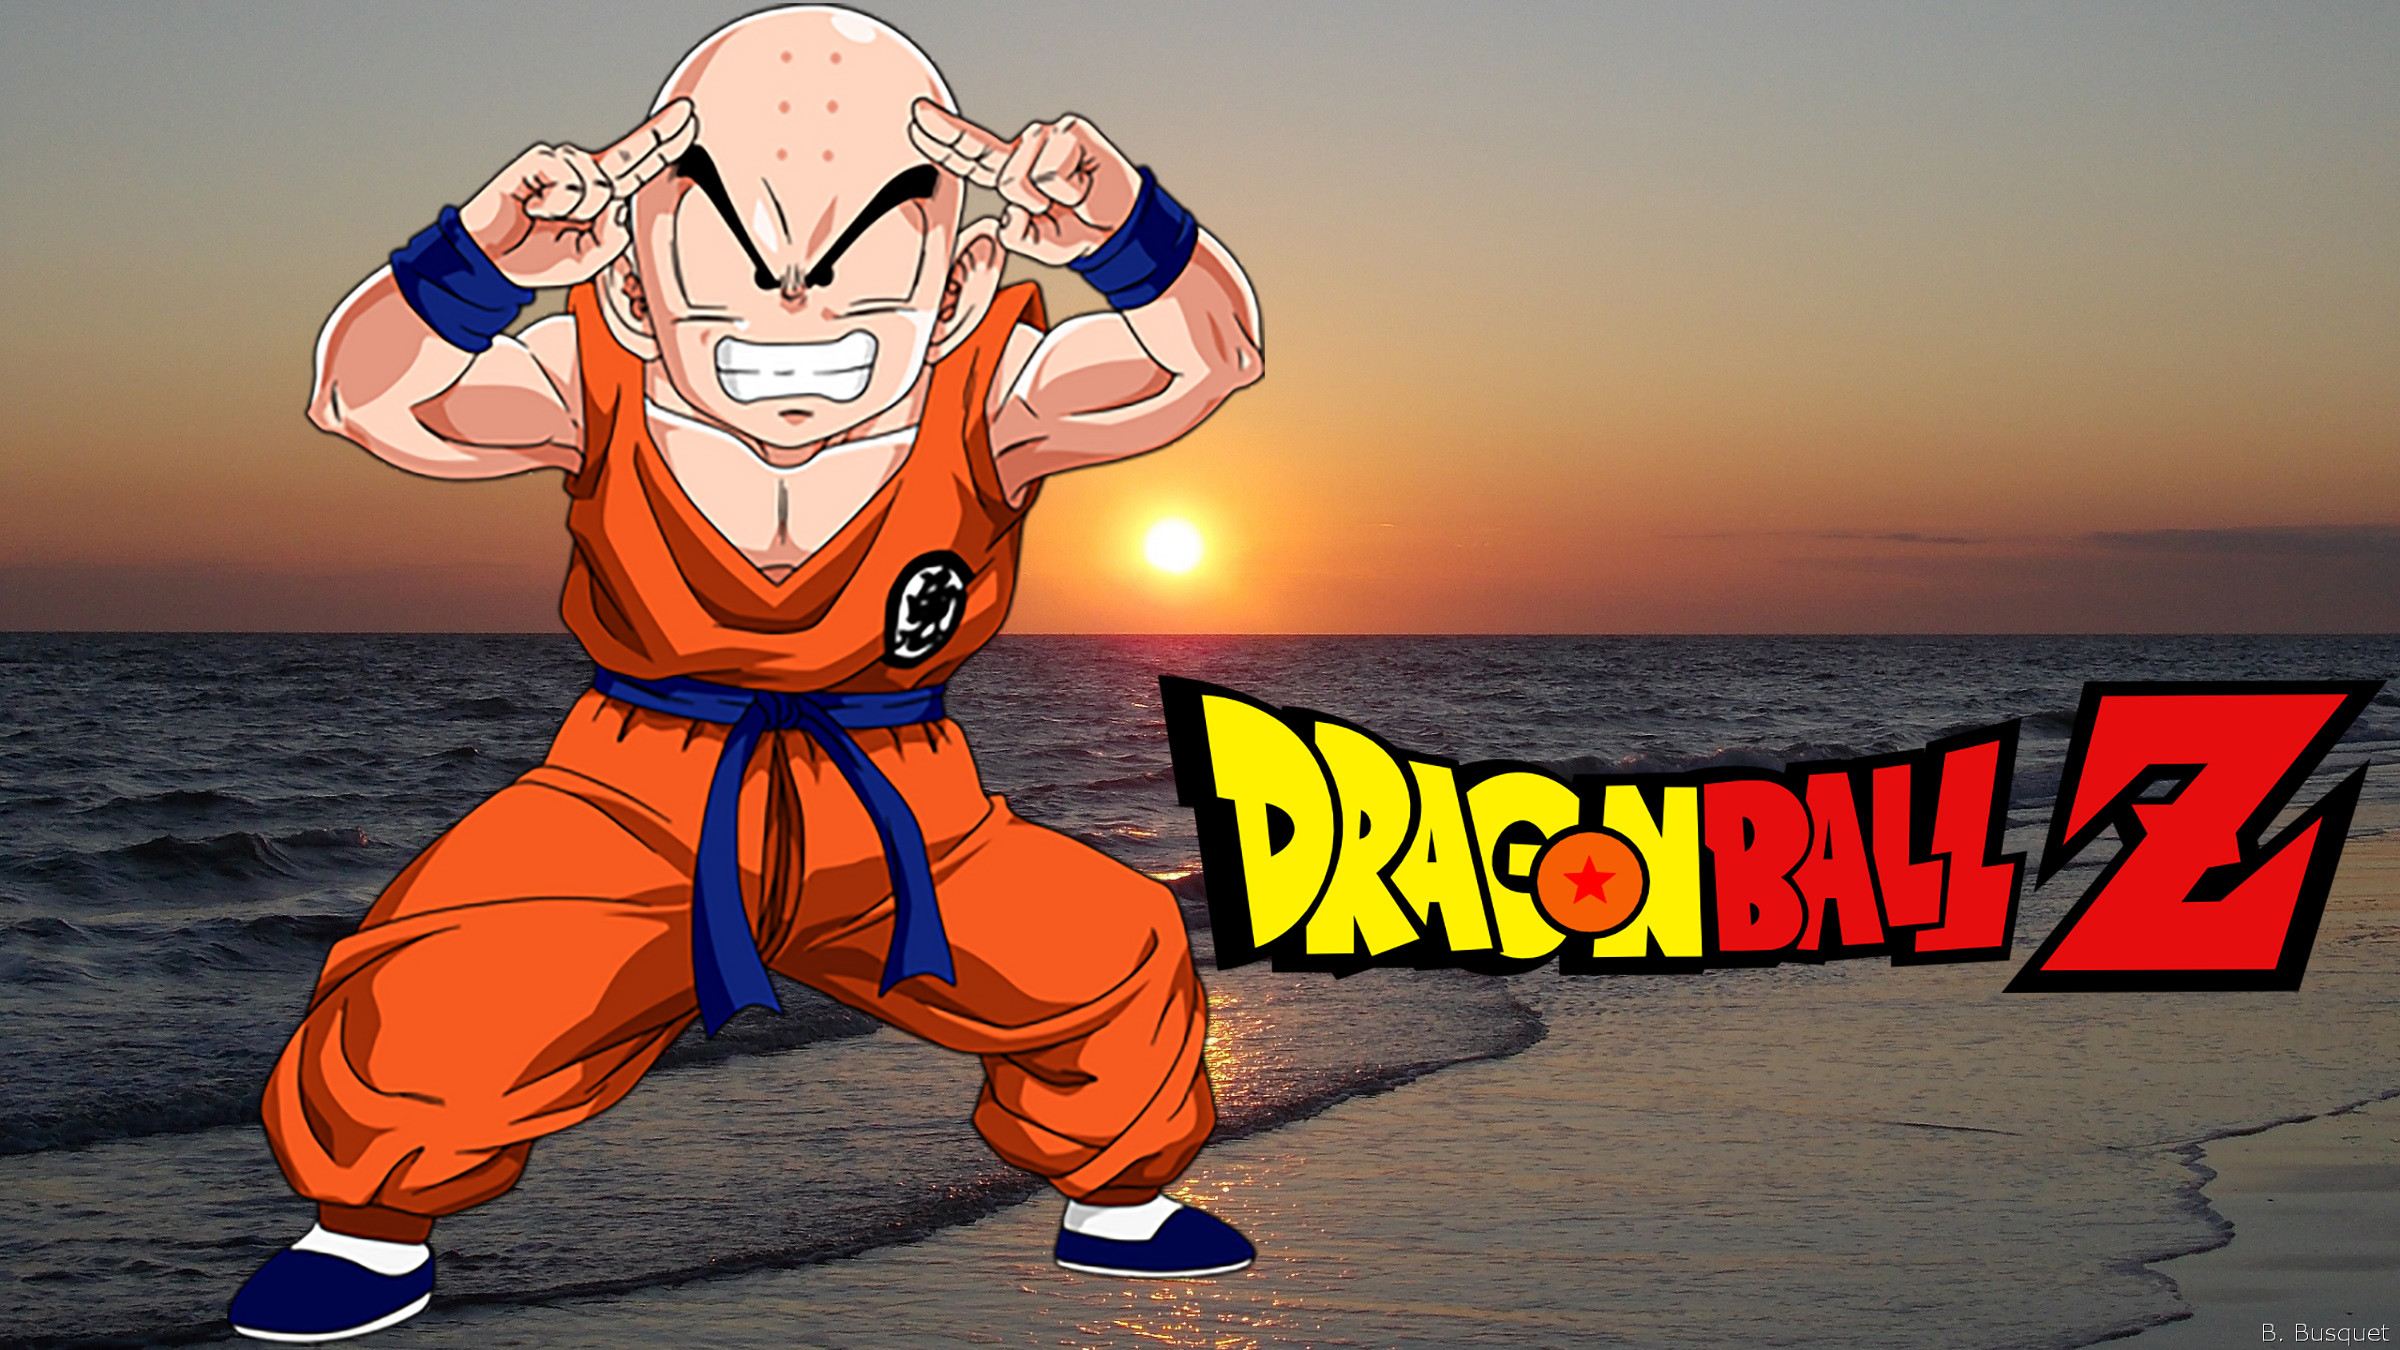 Dragon Ball Wallpapers   Barbaras HD Wallpapers 2400x1350